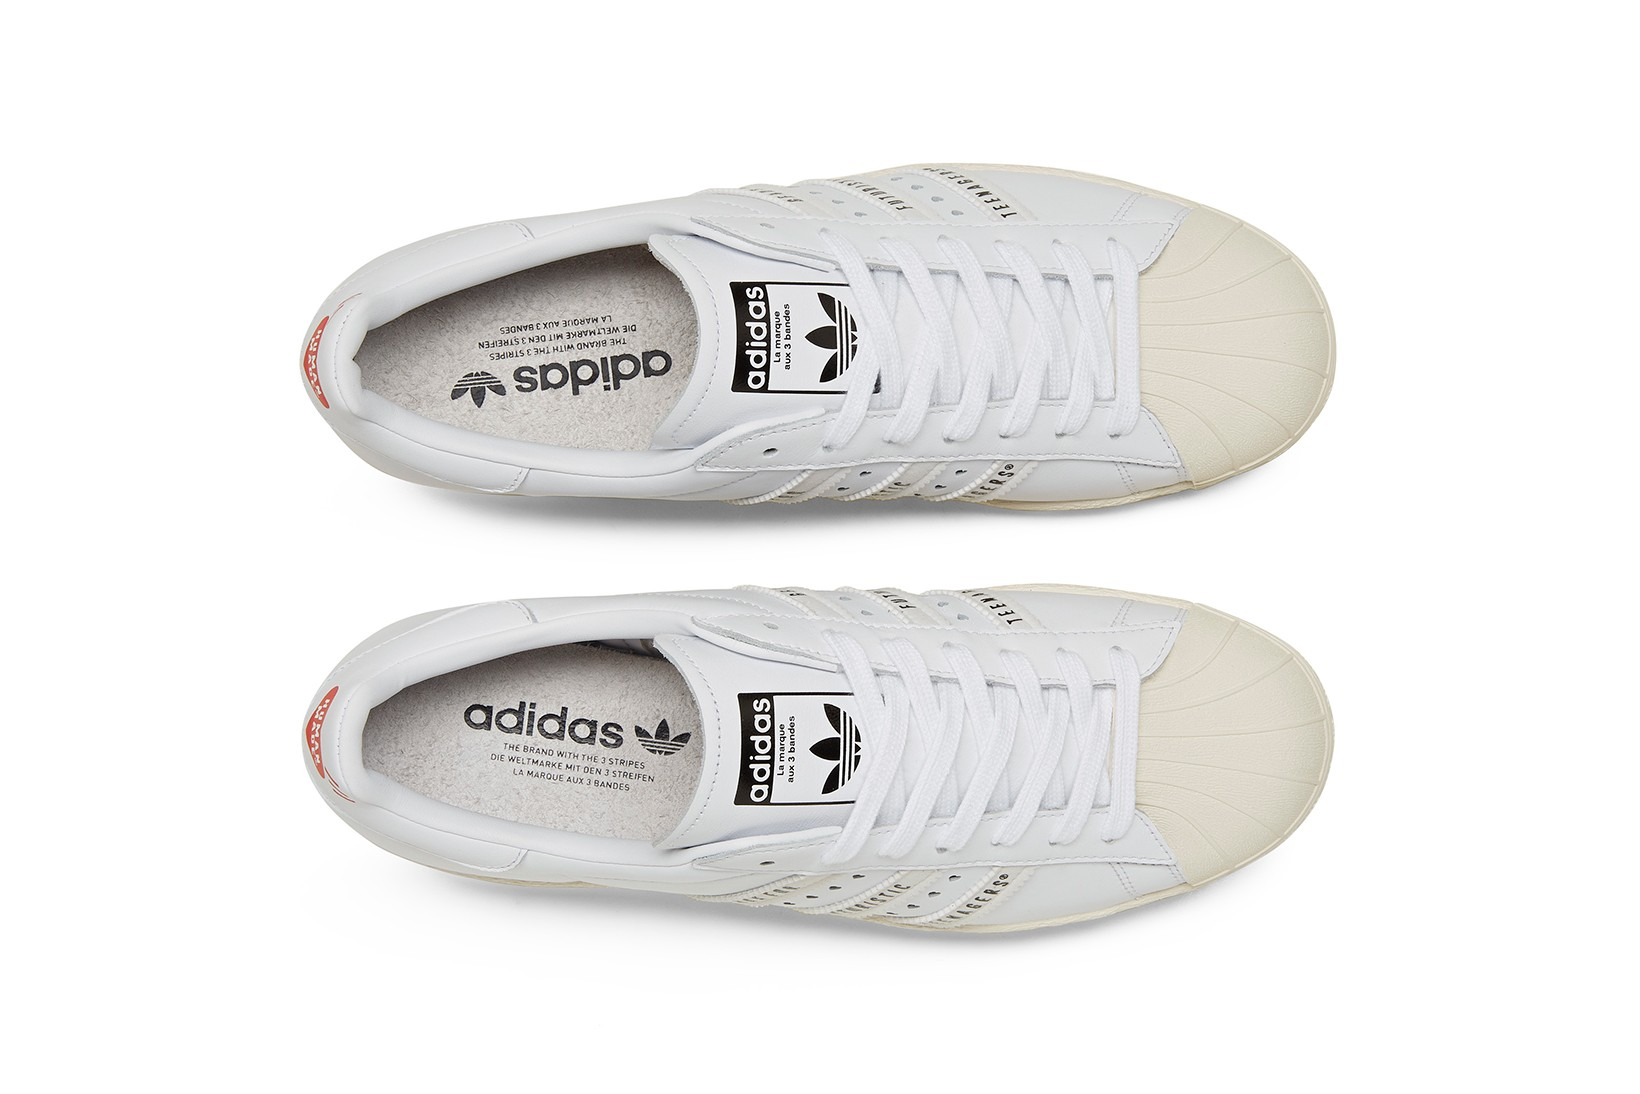 adidas the brand with the 3 stripes la marque aux 3 bandes